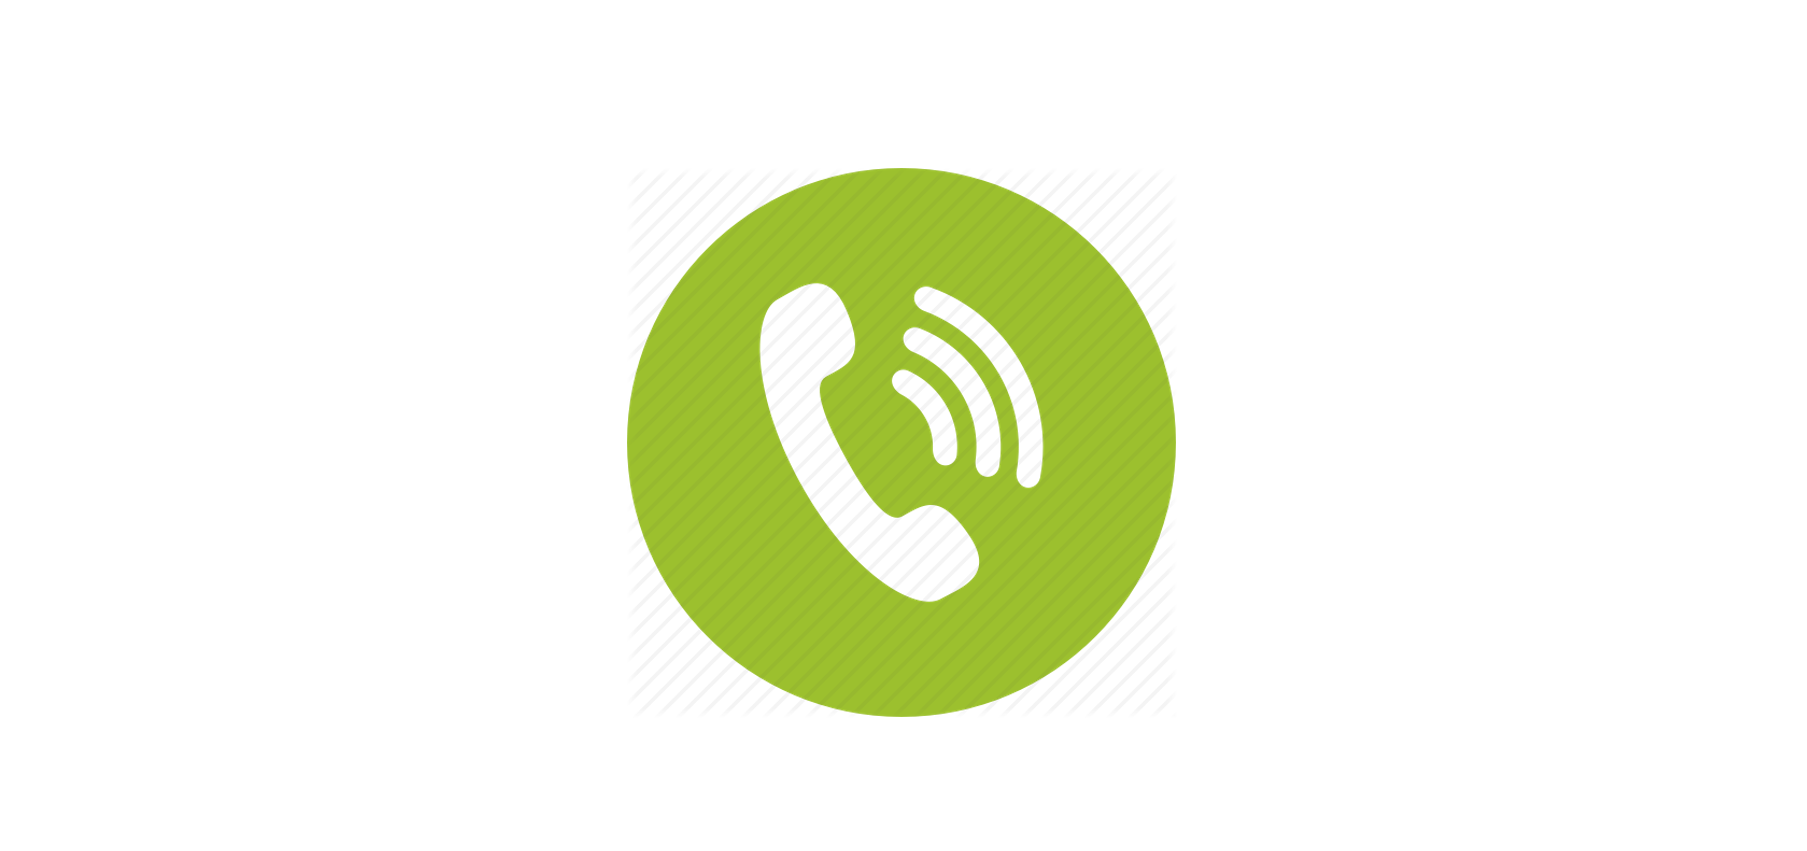 telephone-icon4.png